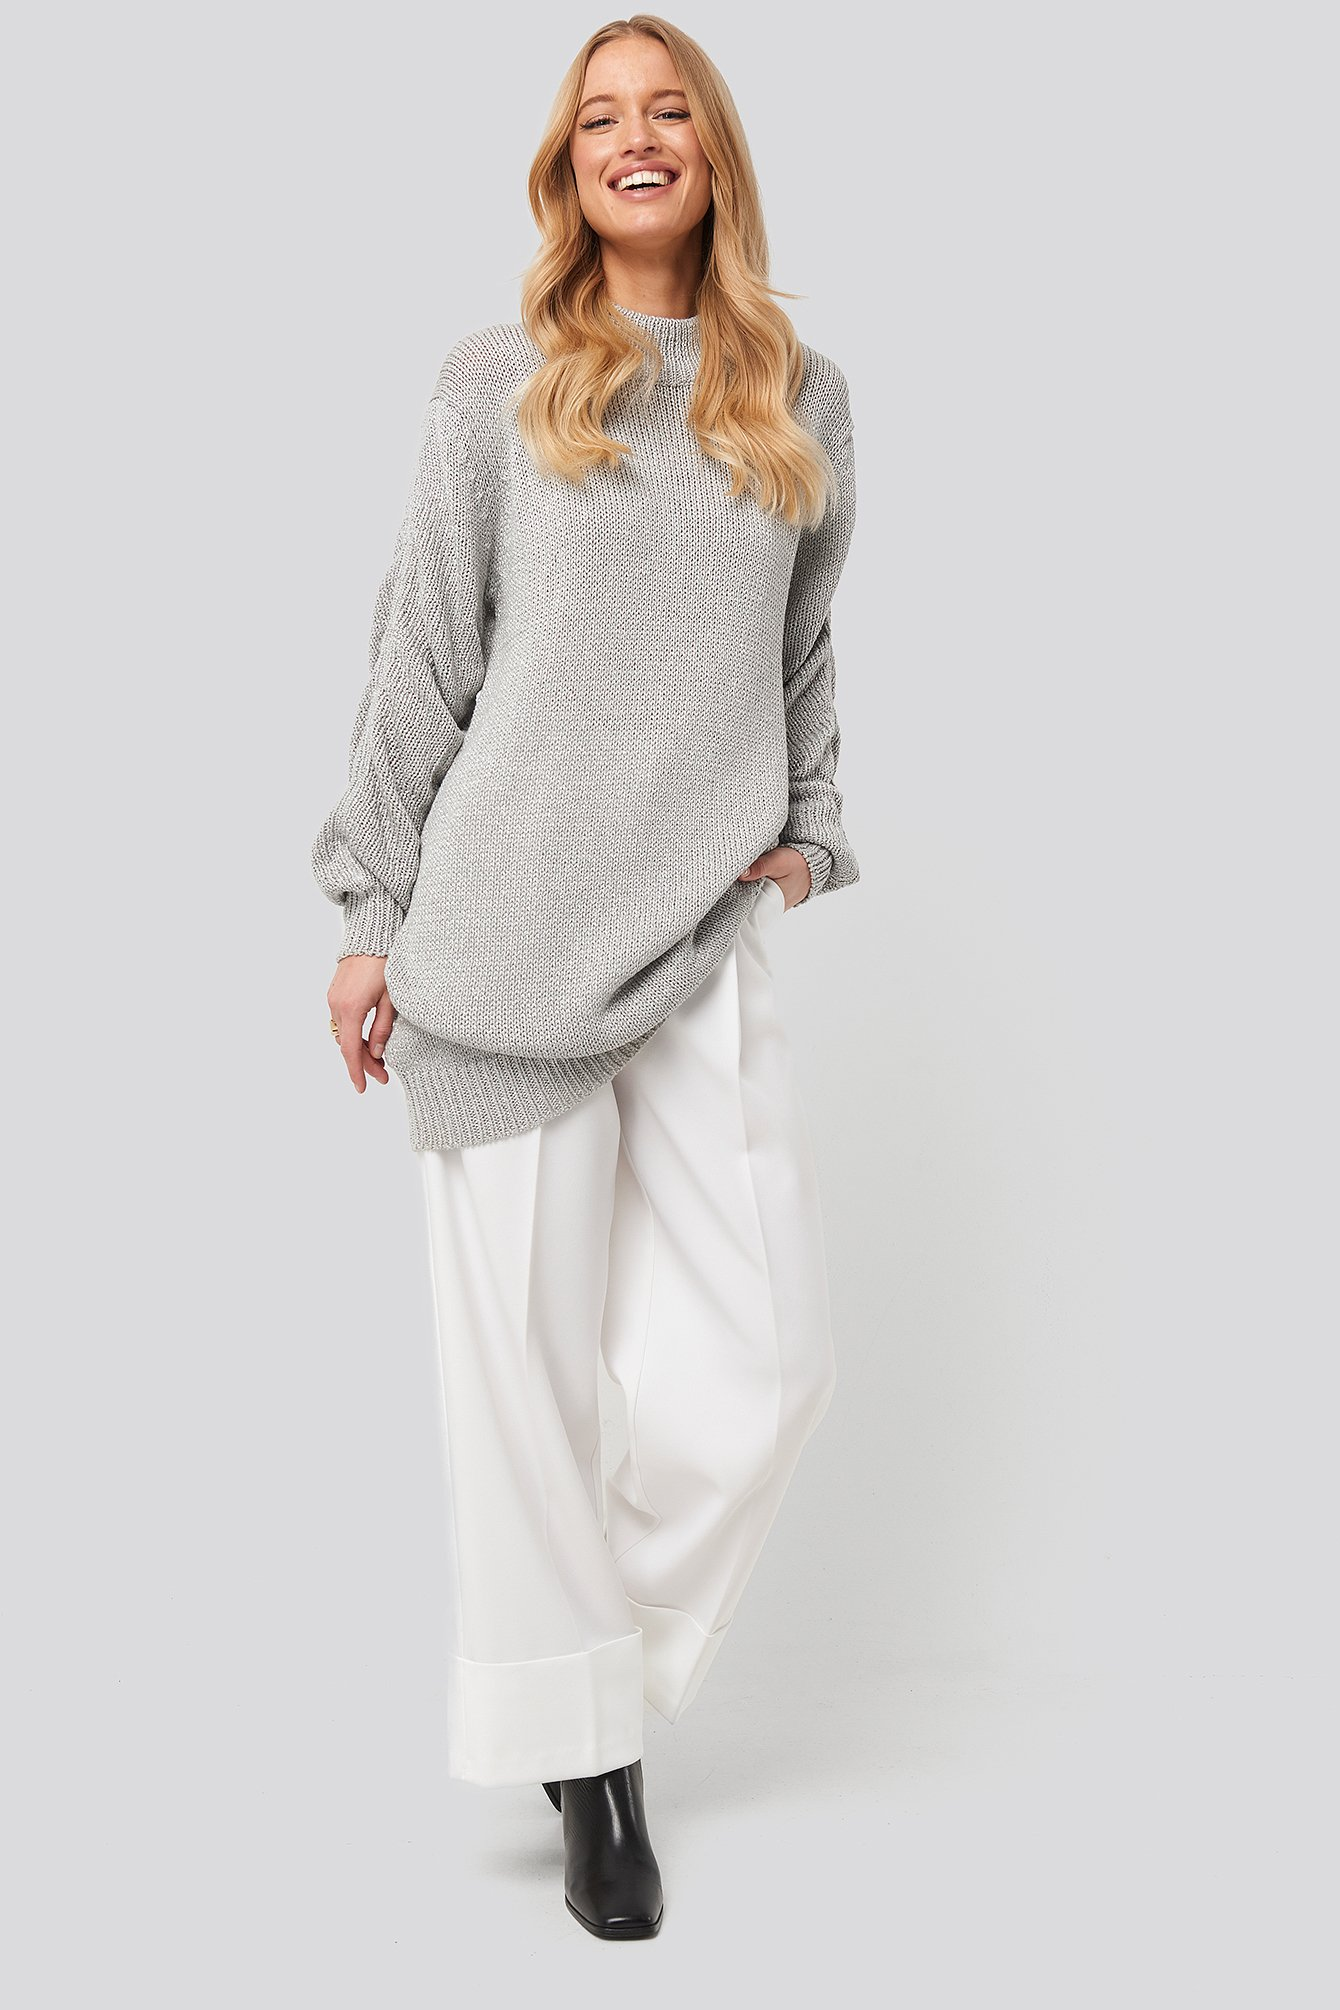 NA-KD Glittery Knitted Long Sweater - Grey,Silver